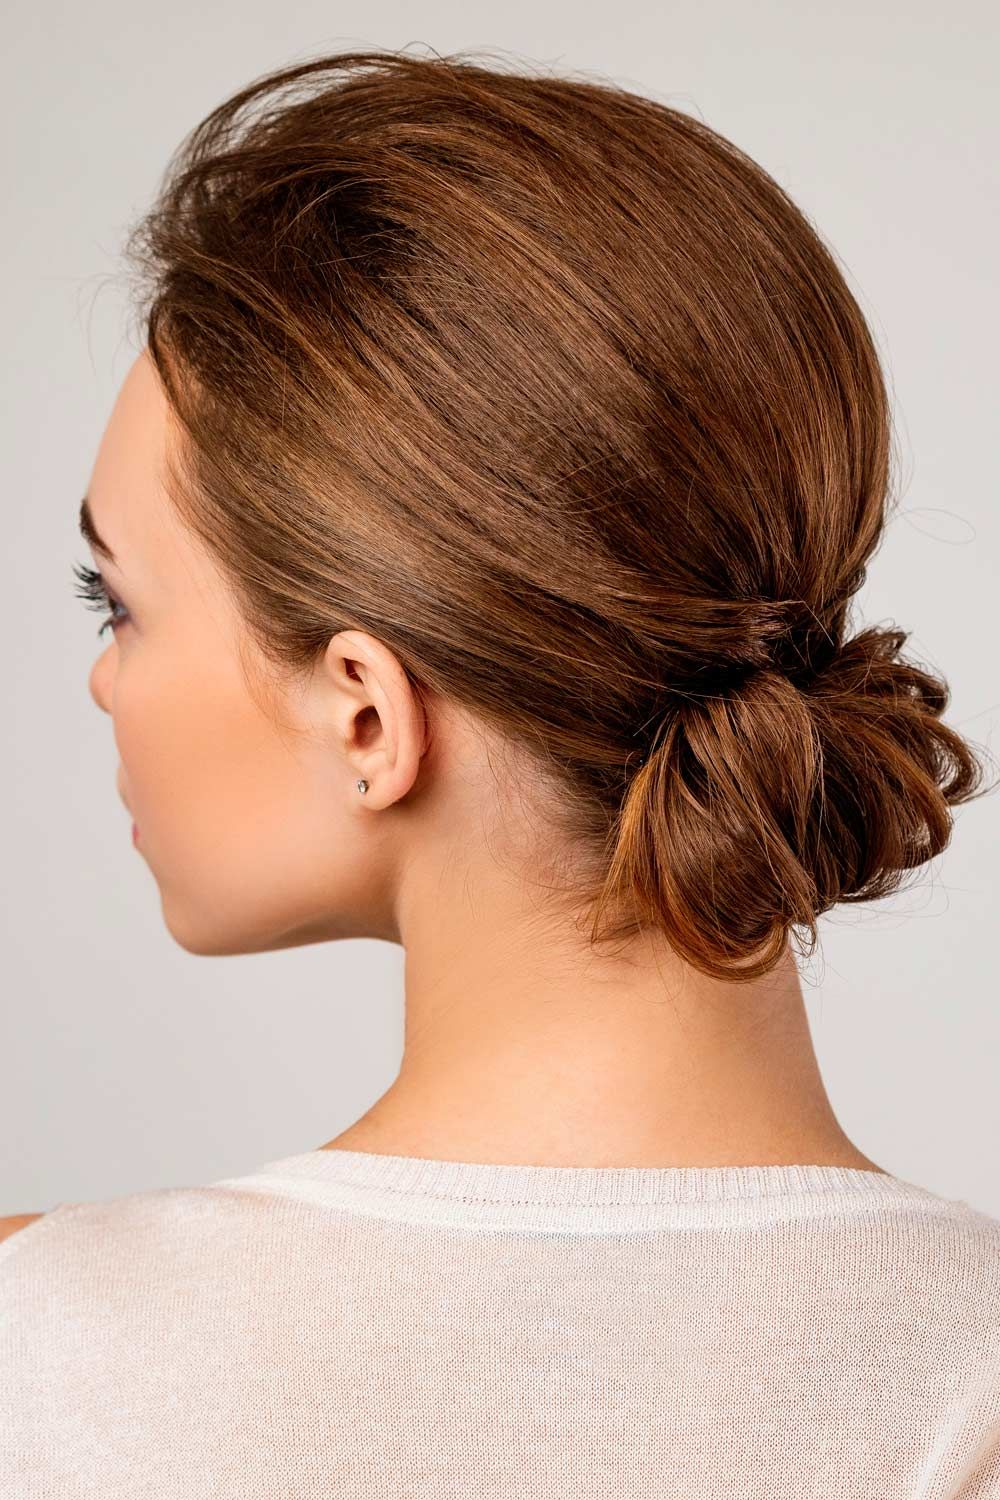 Crimped Hair Putting Into Low Bun